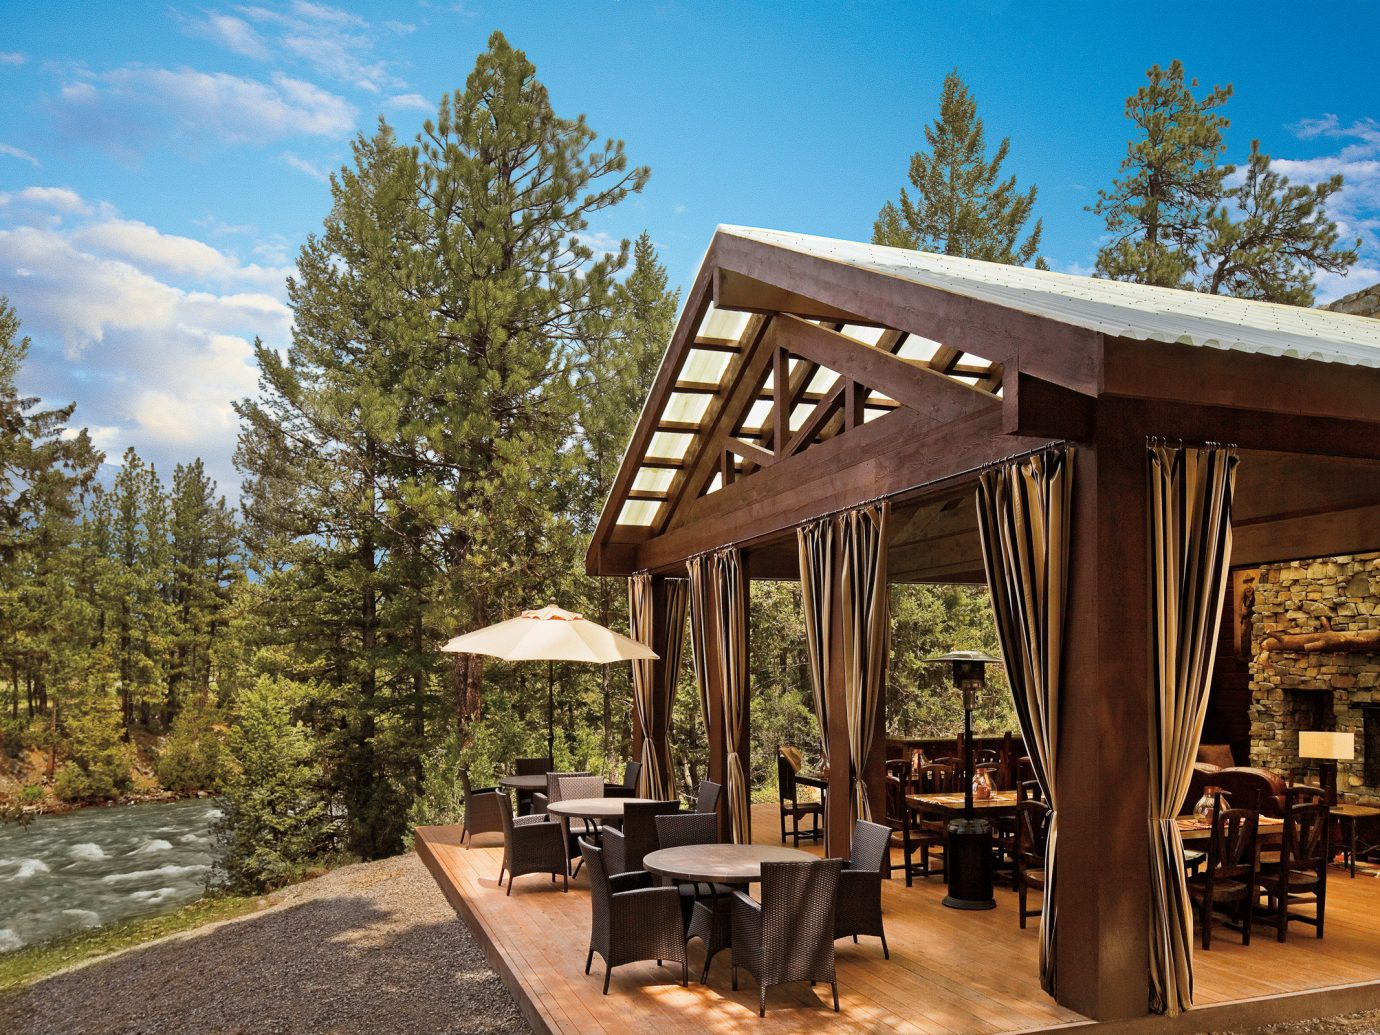 Glamping Hotels Montana Outdoors + Adventure Trip Ideas tree outdoor sky property building estate home log cabin real estate cottage outdoor structure Resort